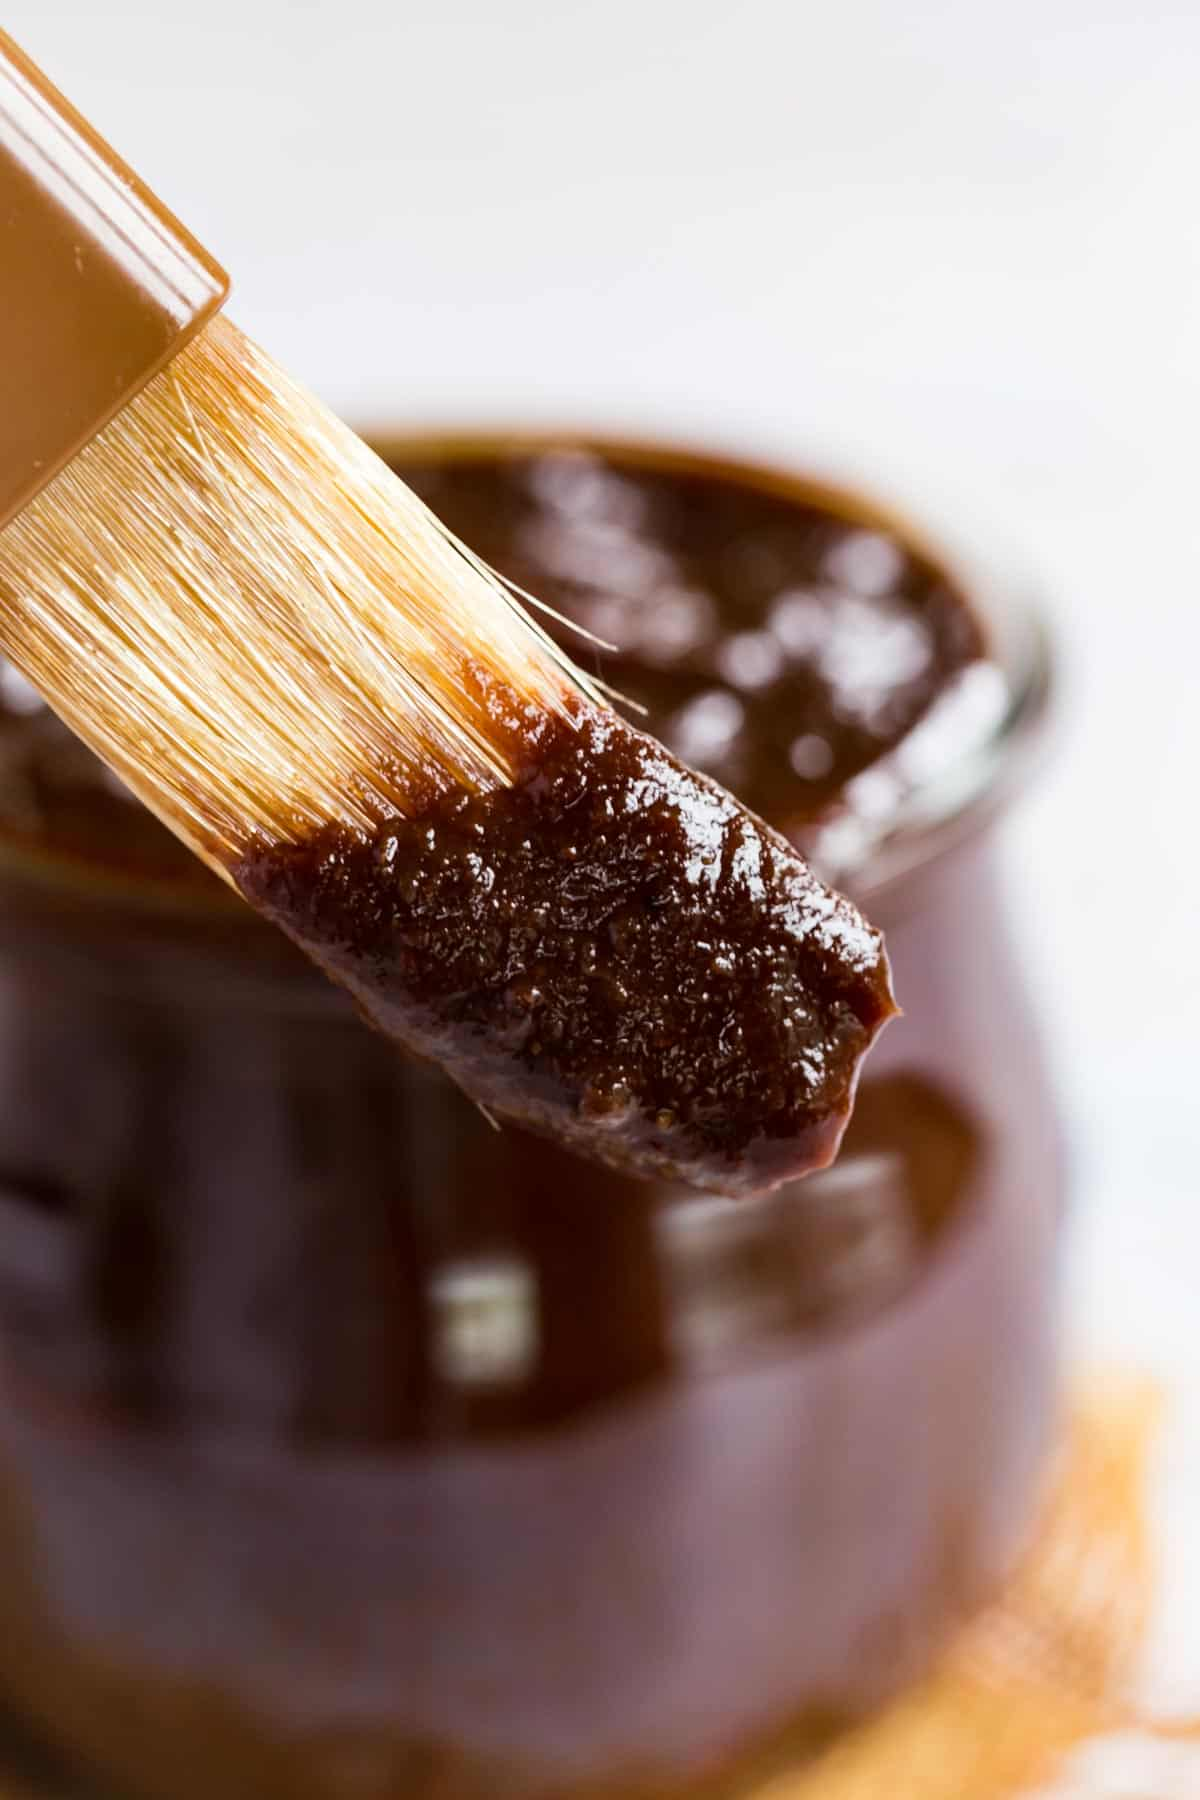 bbq sauce on a brush